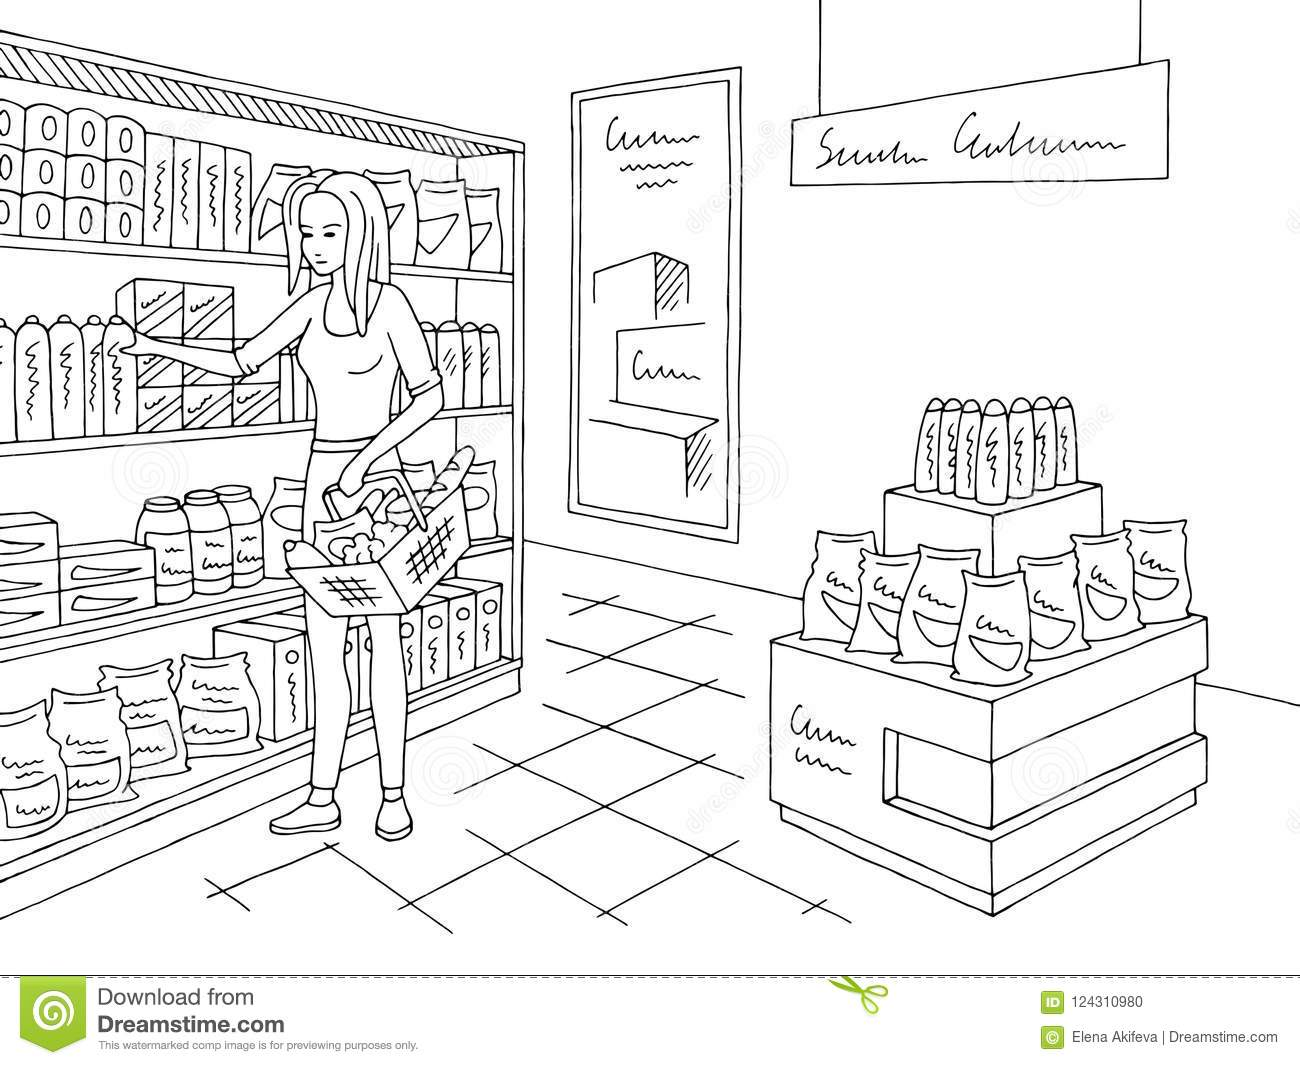 Grocery Store Shop Interior Black White Graphic Sketch ...